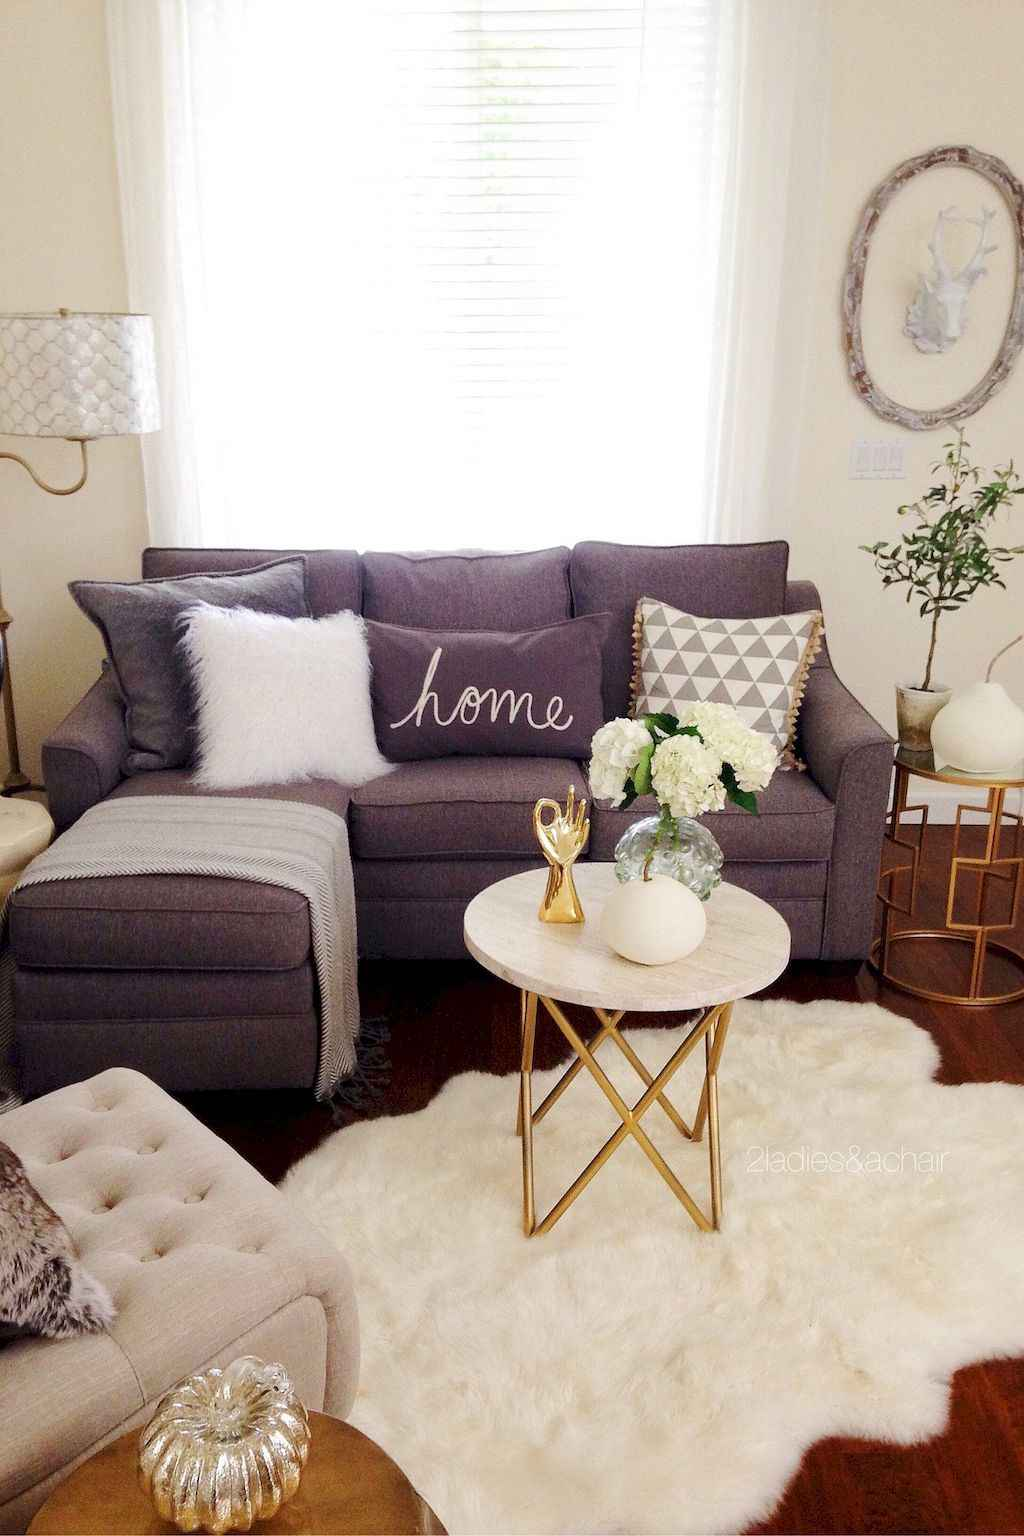 Clever college apartment decorating ideas on a budget (48)